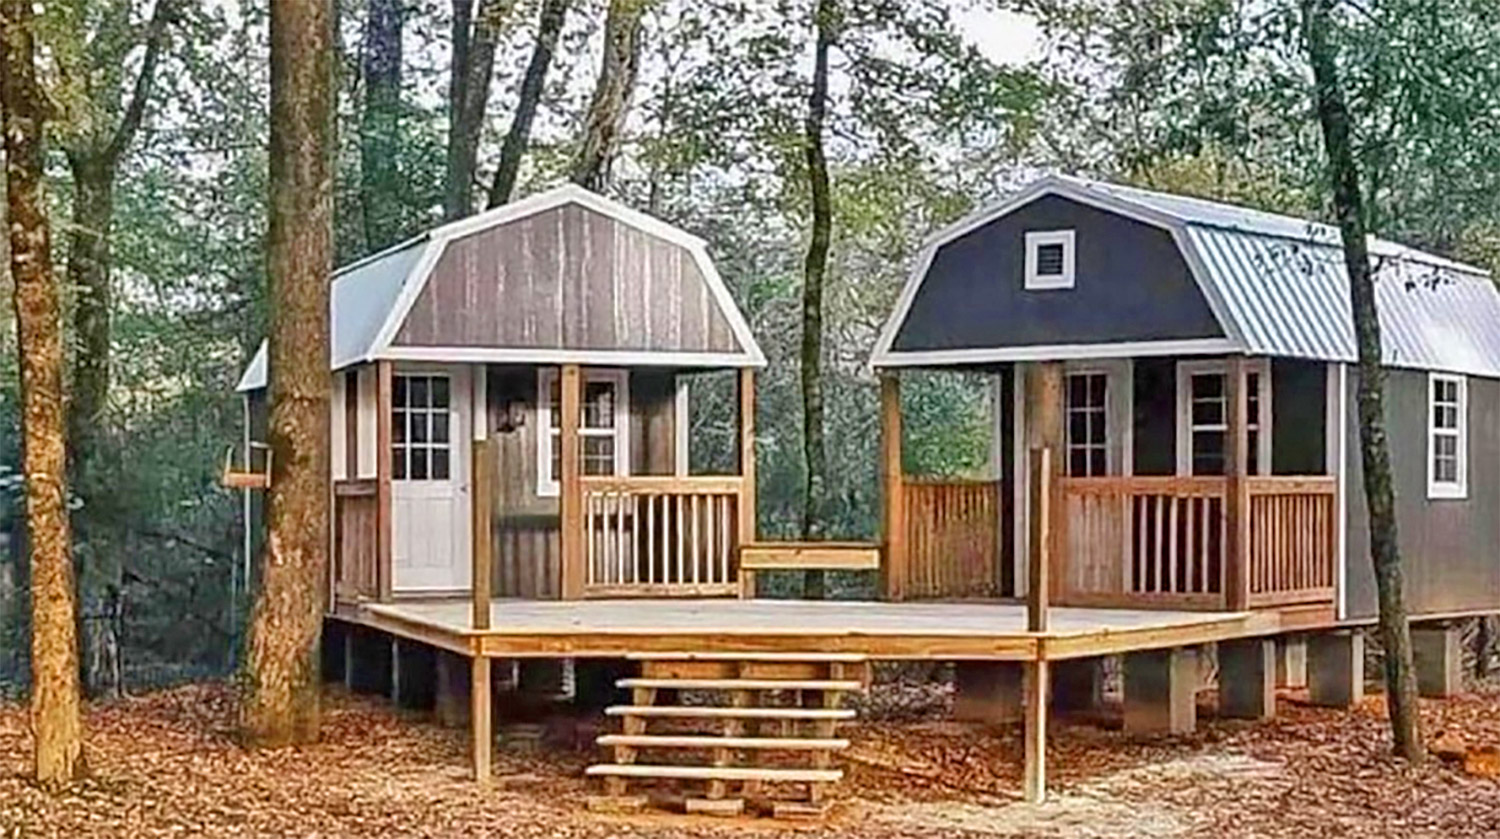 We-shed - dual tiny home he-shed and she-shed with conjoined deck